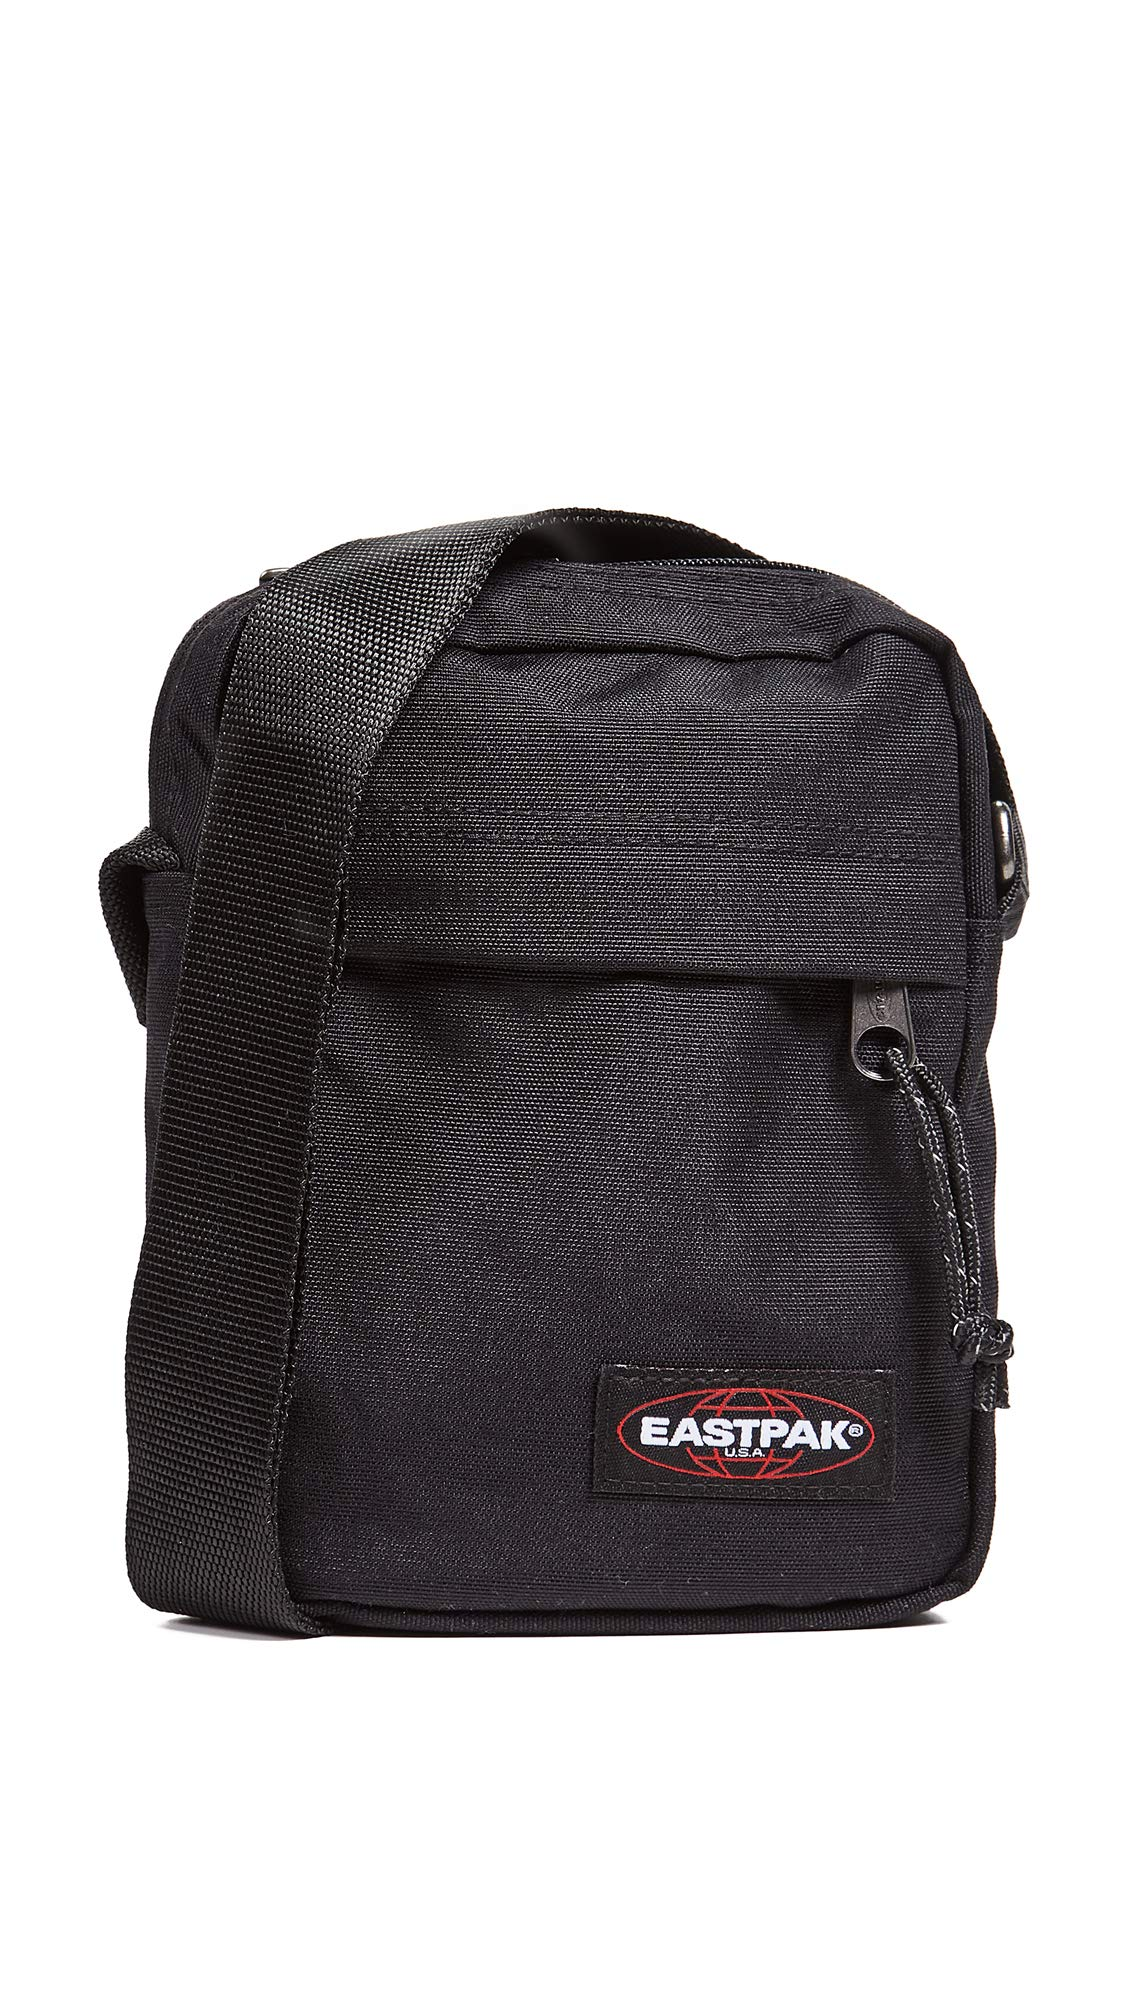 Eastpak The One Messenger Bag, 21 cm, 2.5 L, Black